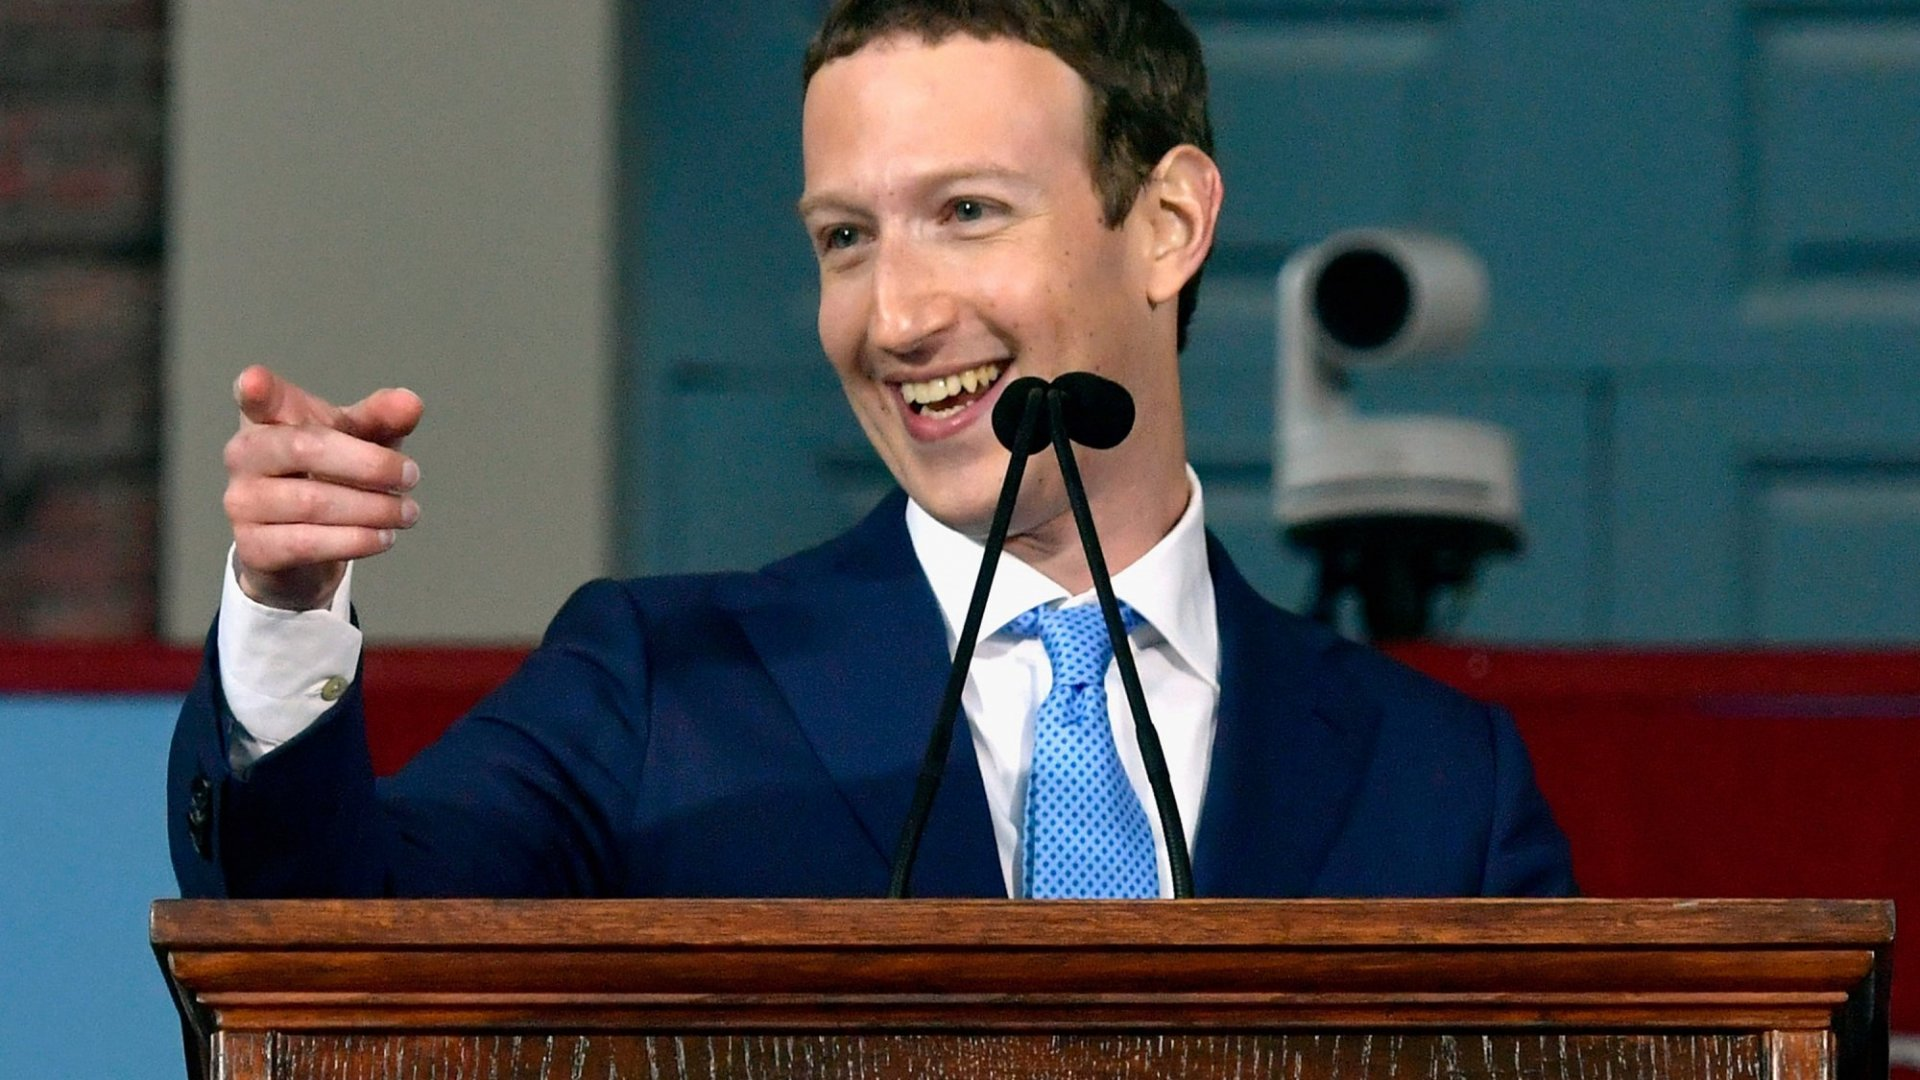 Mark Zuckerberg's Commencement Speech Used This 1 Rule of Persuasion--Just Like Steve Jobs Did